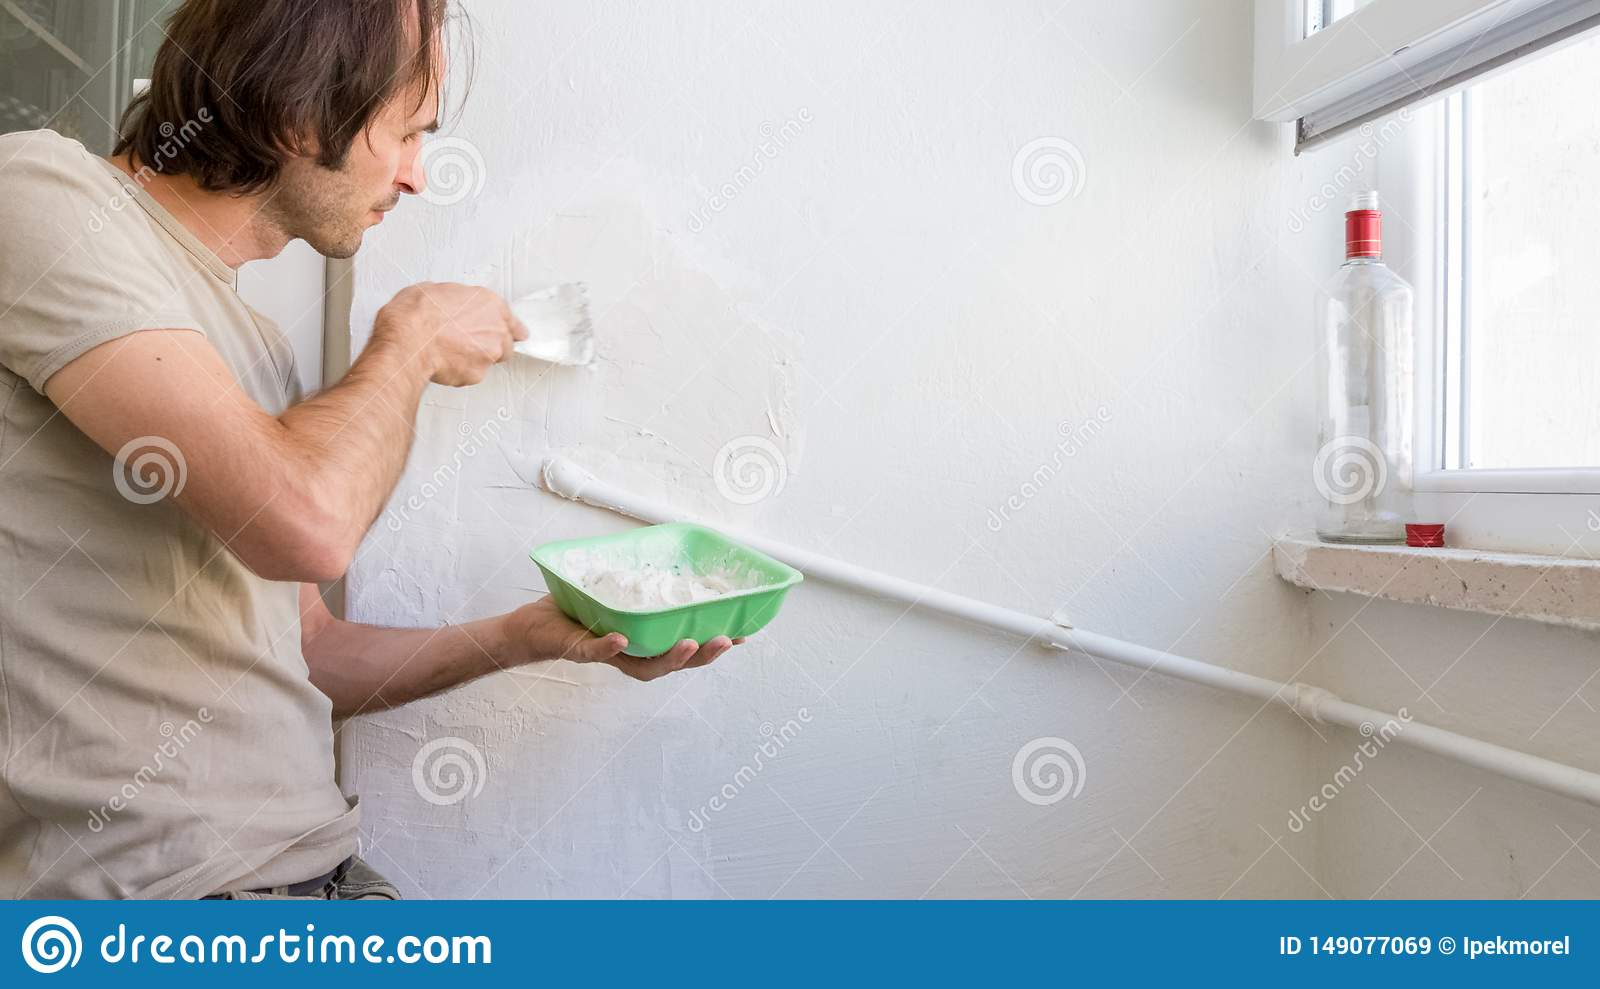 Young man repairing wall at his apartment, applying plaster mix on the wall